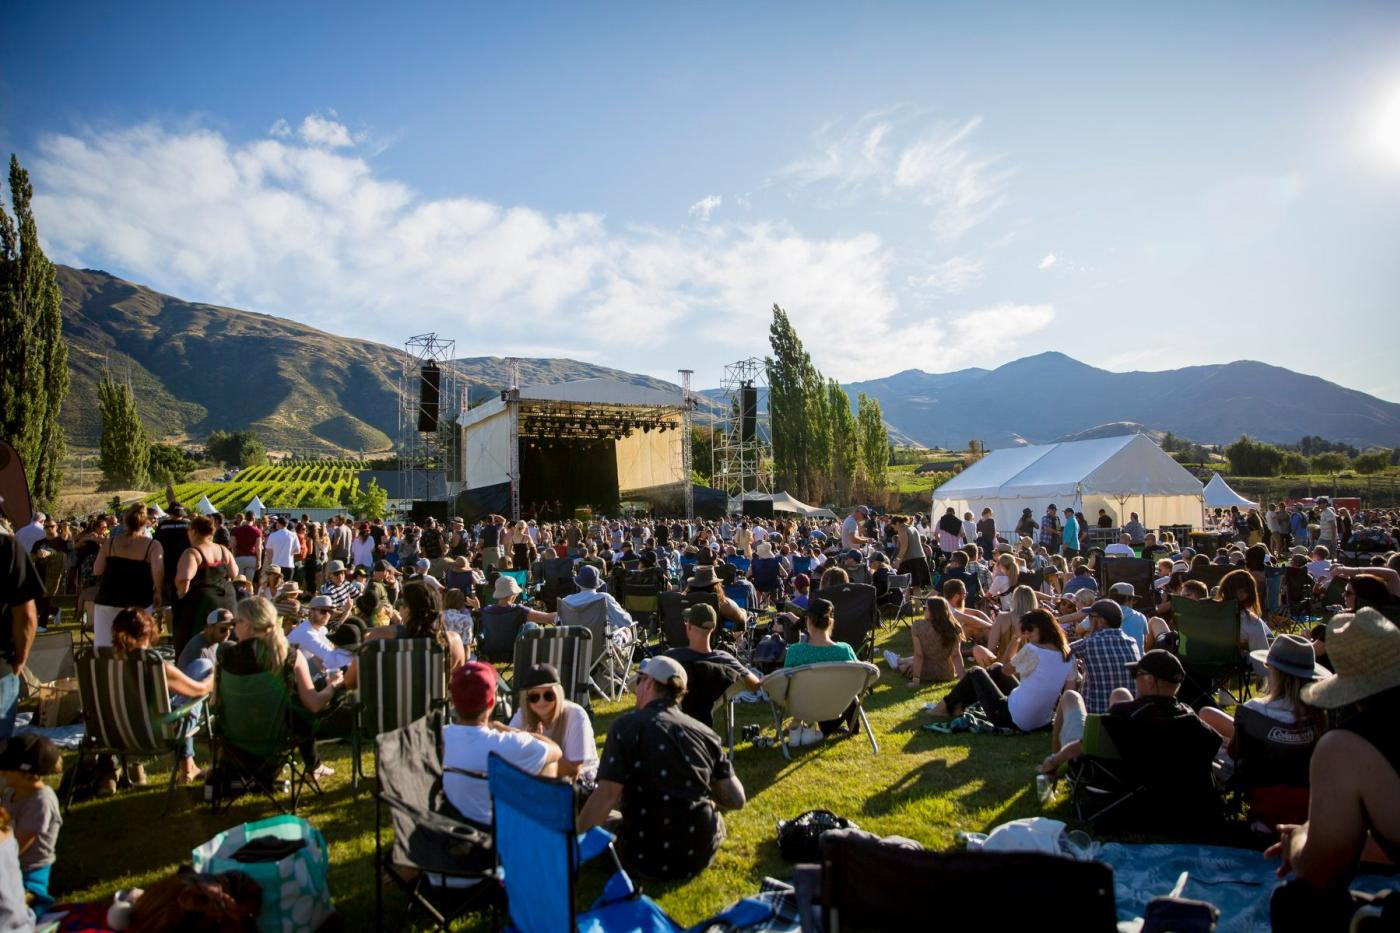 Concert goers relaxing at the annual Gibbston Valley Summer Concert